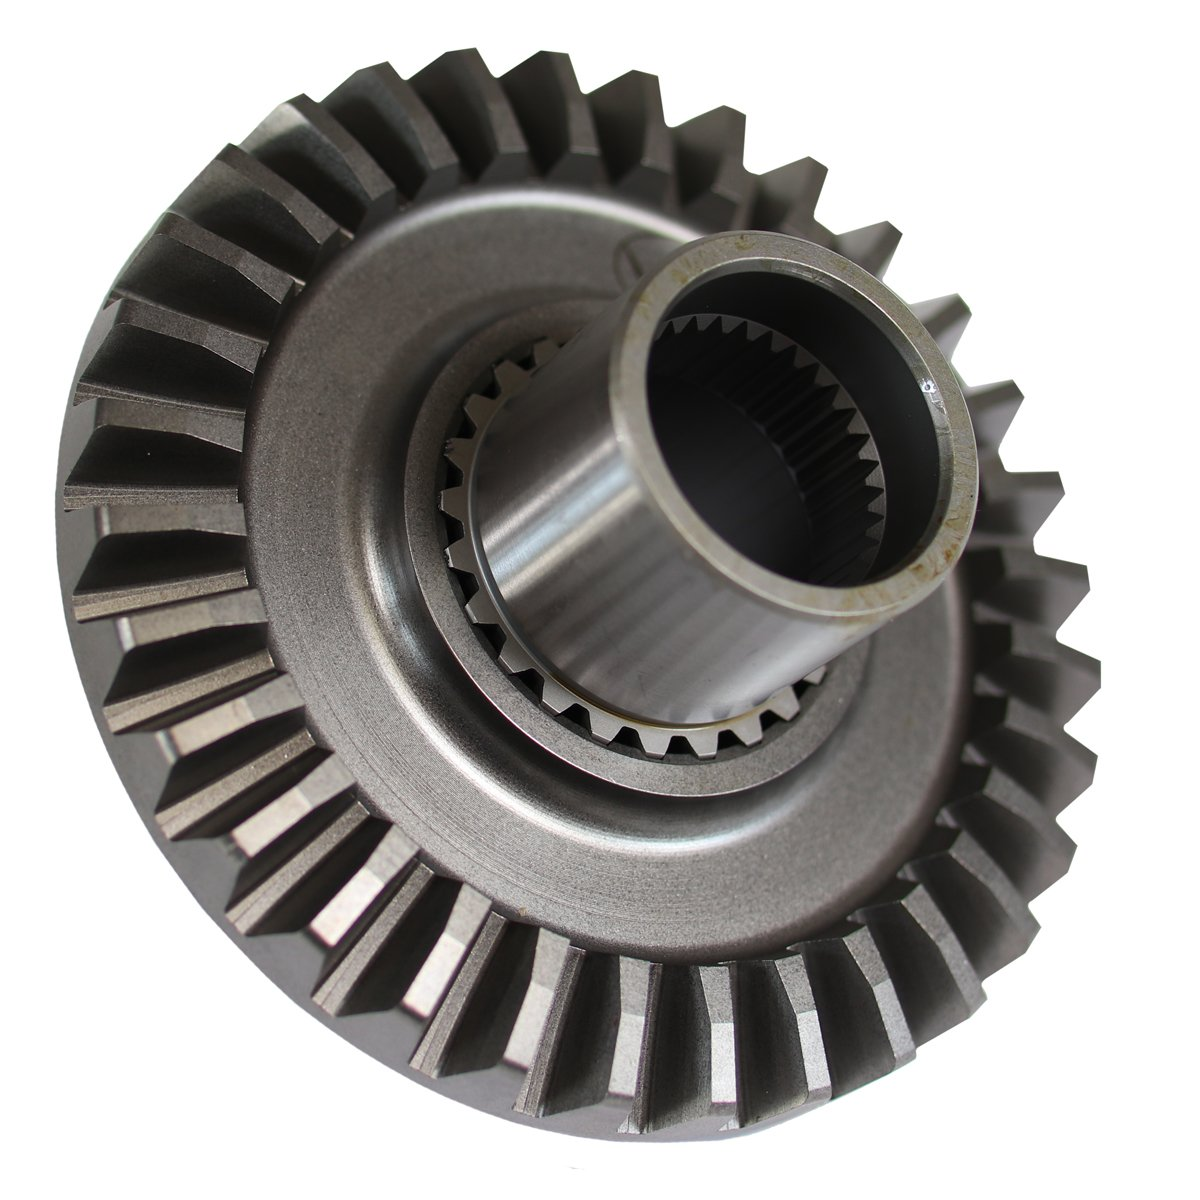 Rear Differential Ring Gear for Suzuki Ozark 250 /& LT-Z250 Replaces OEM# 27321-05GA0 AT-03563 Armor Tech